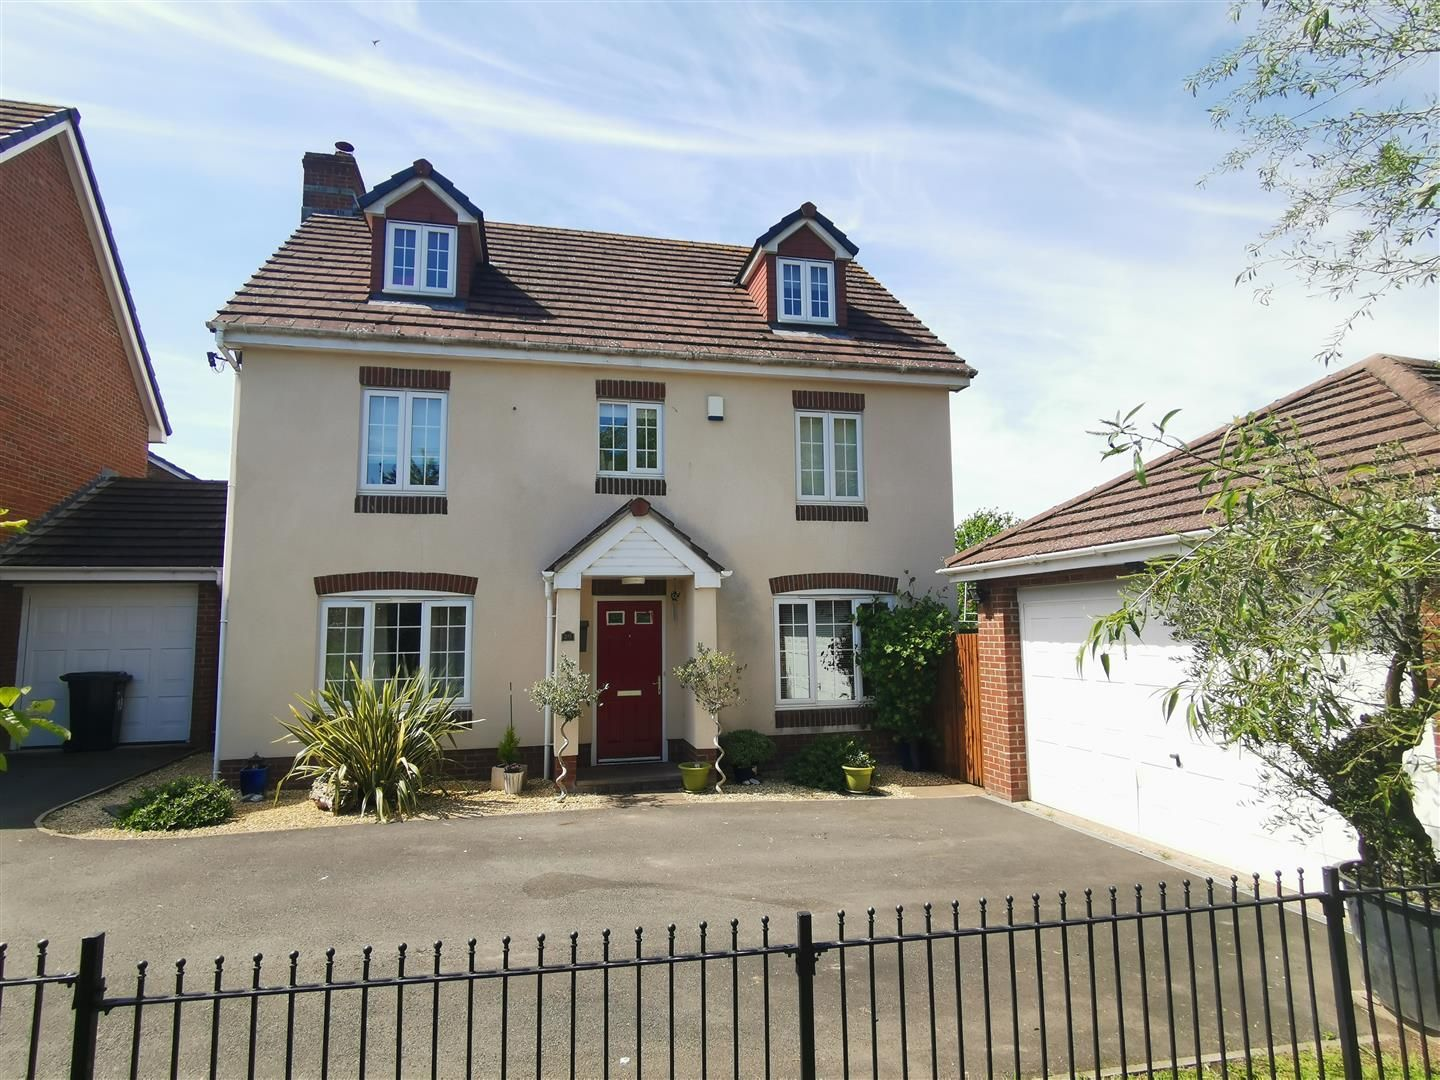 5 bed detached for sale in Kingstone, HR2